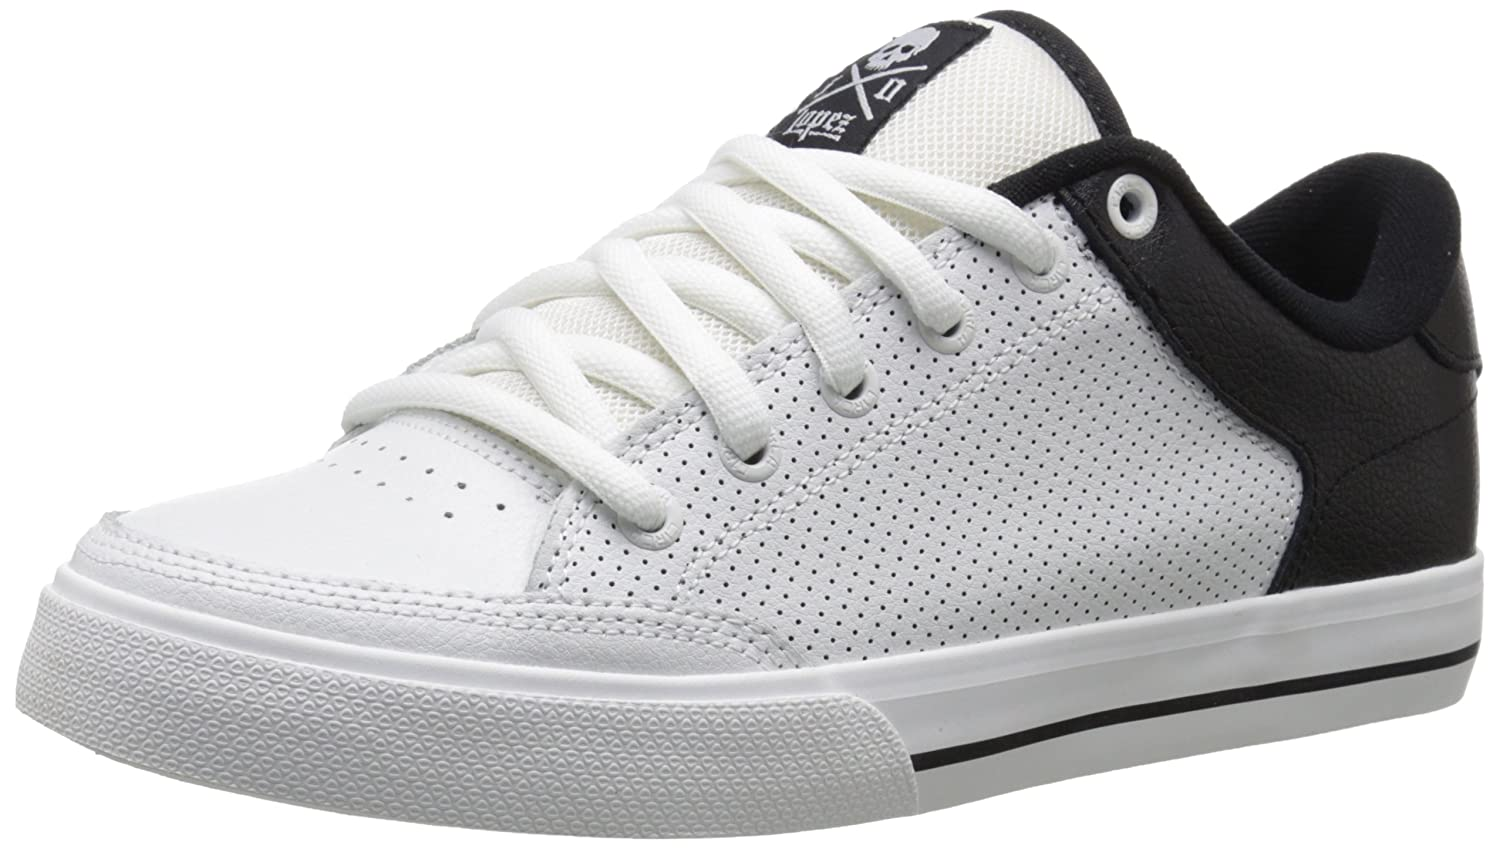 C1RCA Men's AL50 SE Skate Shoe 8 D(M) US|White/Black